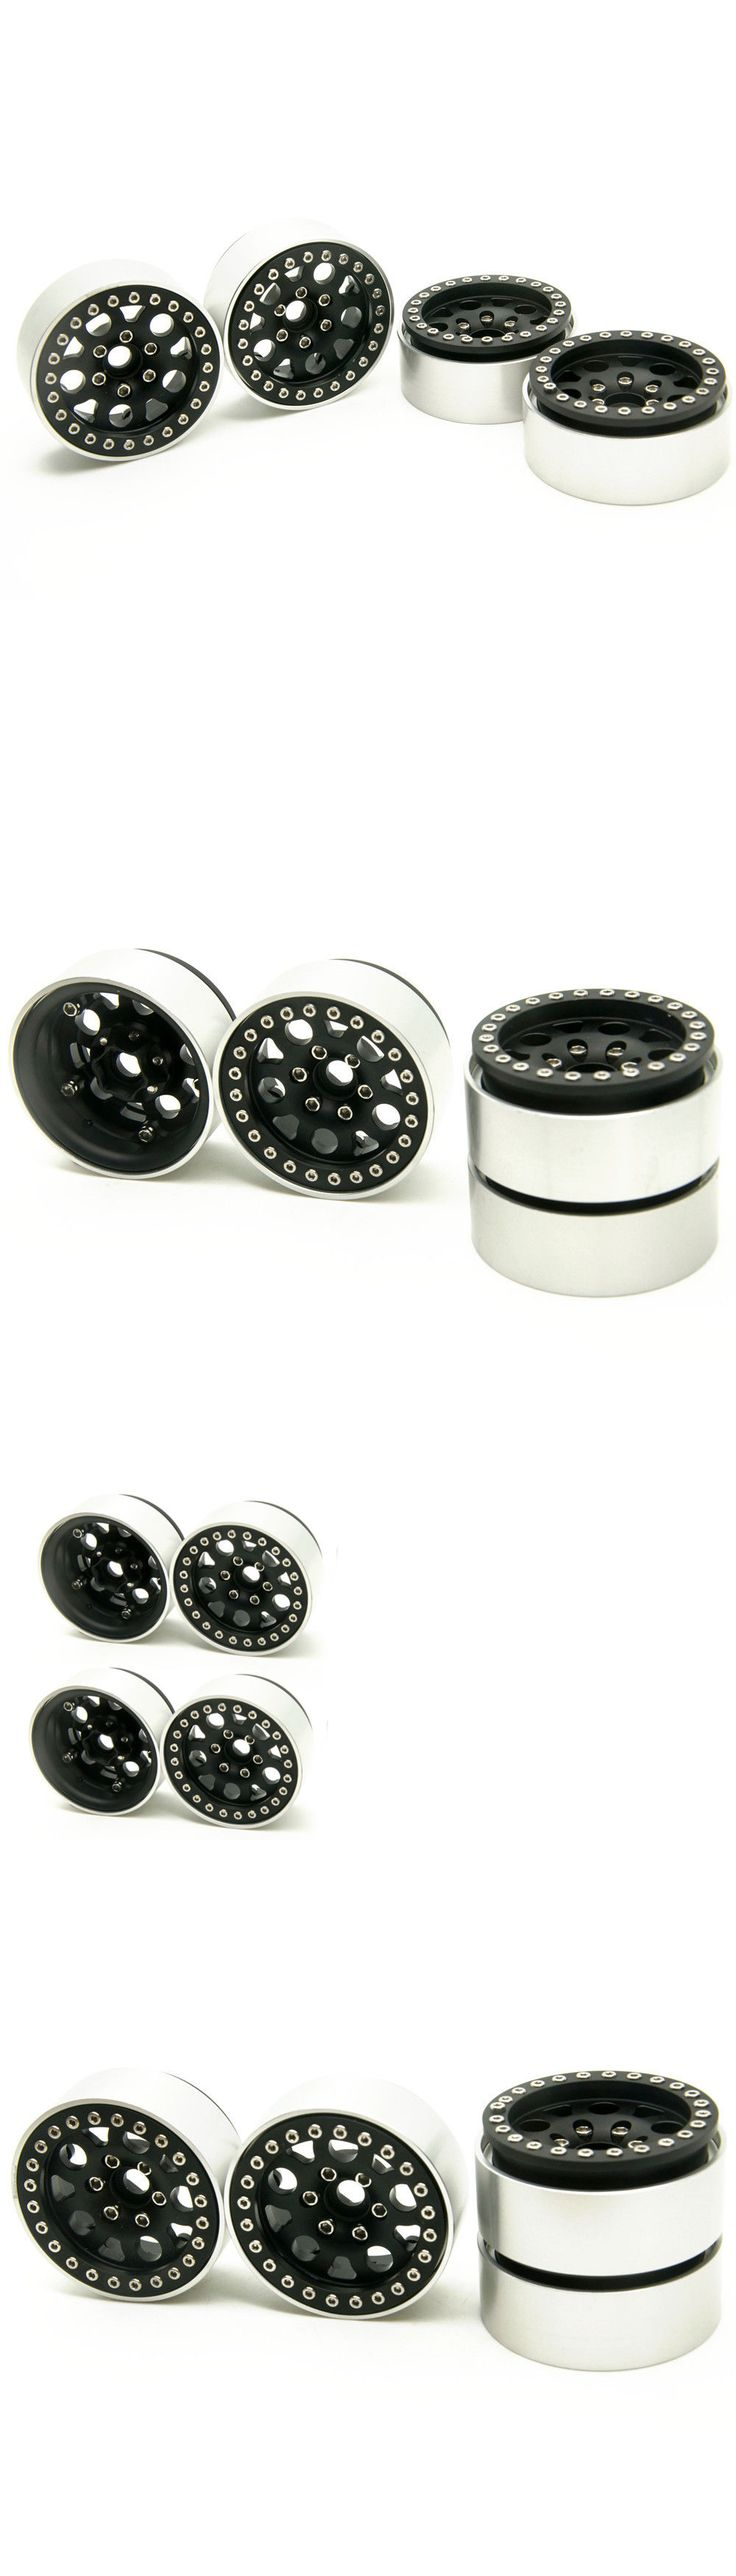 Wheels Tires Rims and Hubs 182201: 4X Metal 1.9 Beadlock Wheel Rims For Axial Scx10 D90 Cc01 Rc 1 10 Crawler Car -> BUY IT NOW ONLY: $52.95 on eBay!